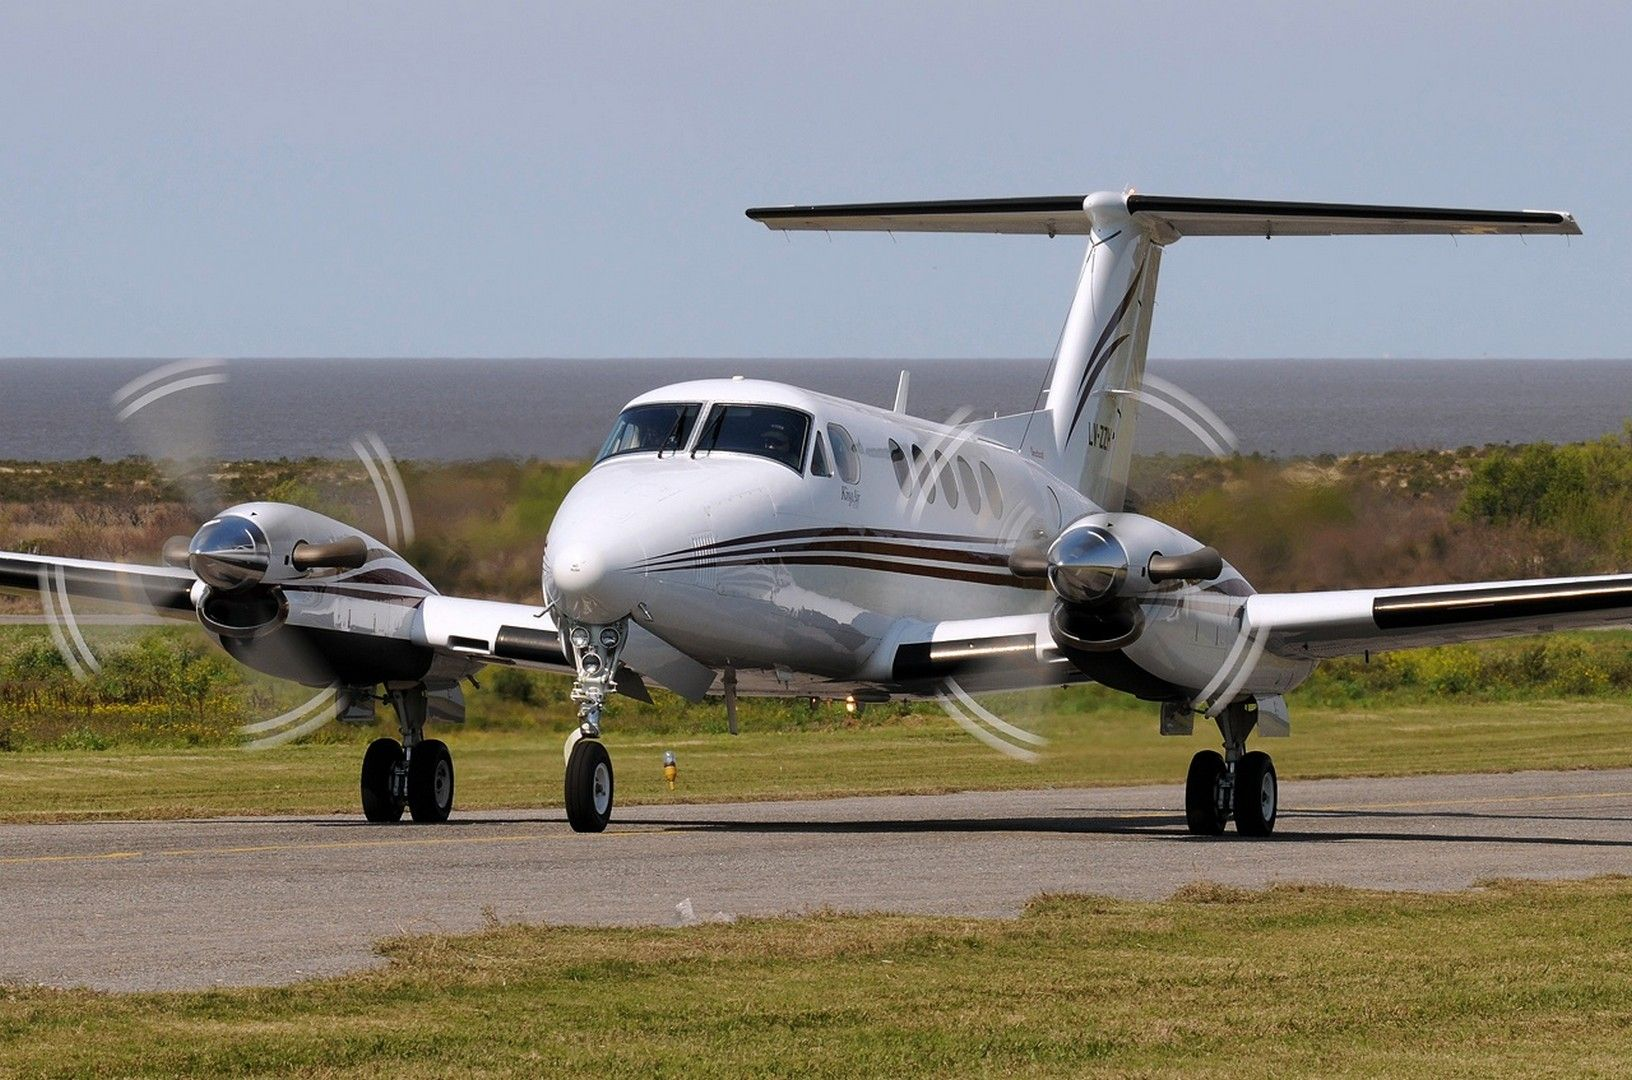 Beech 200 Super King Air (Beech